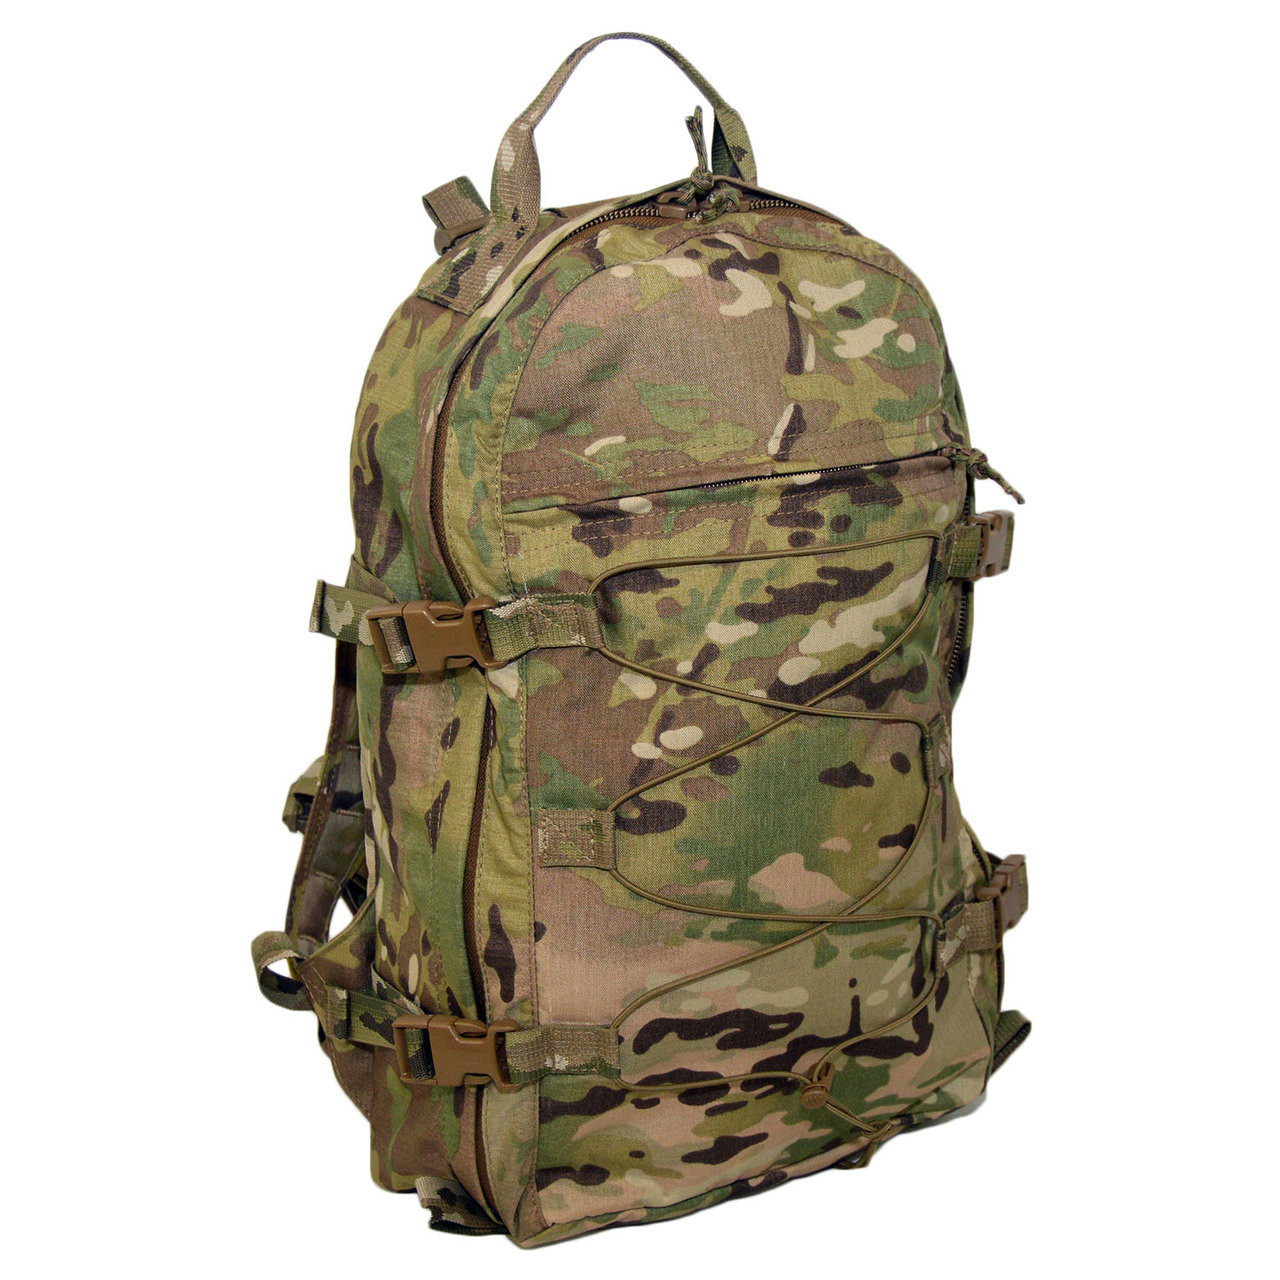 ATS Tactical Gear Cobra 2.6 in Multicam